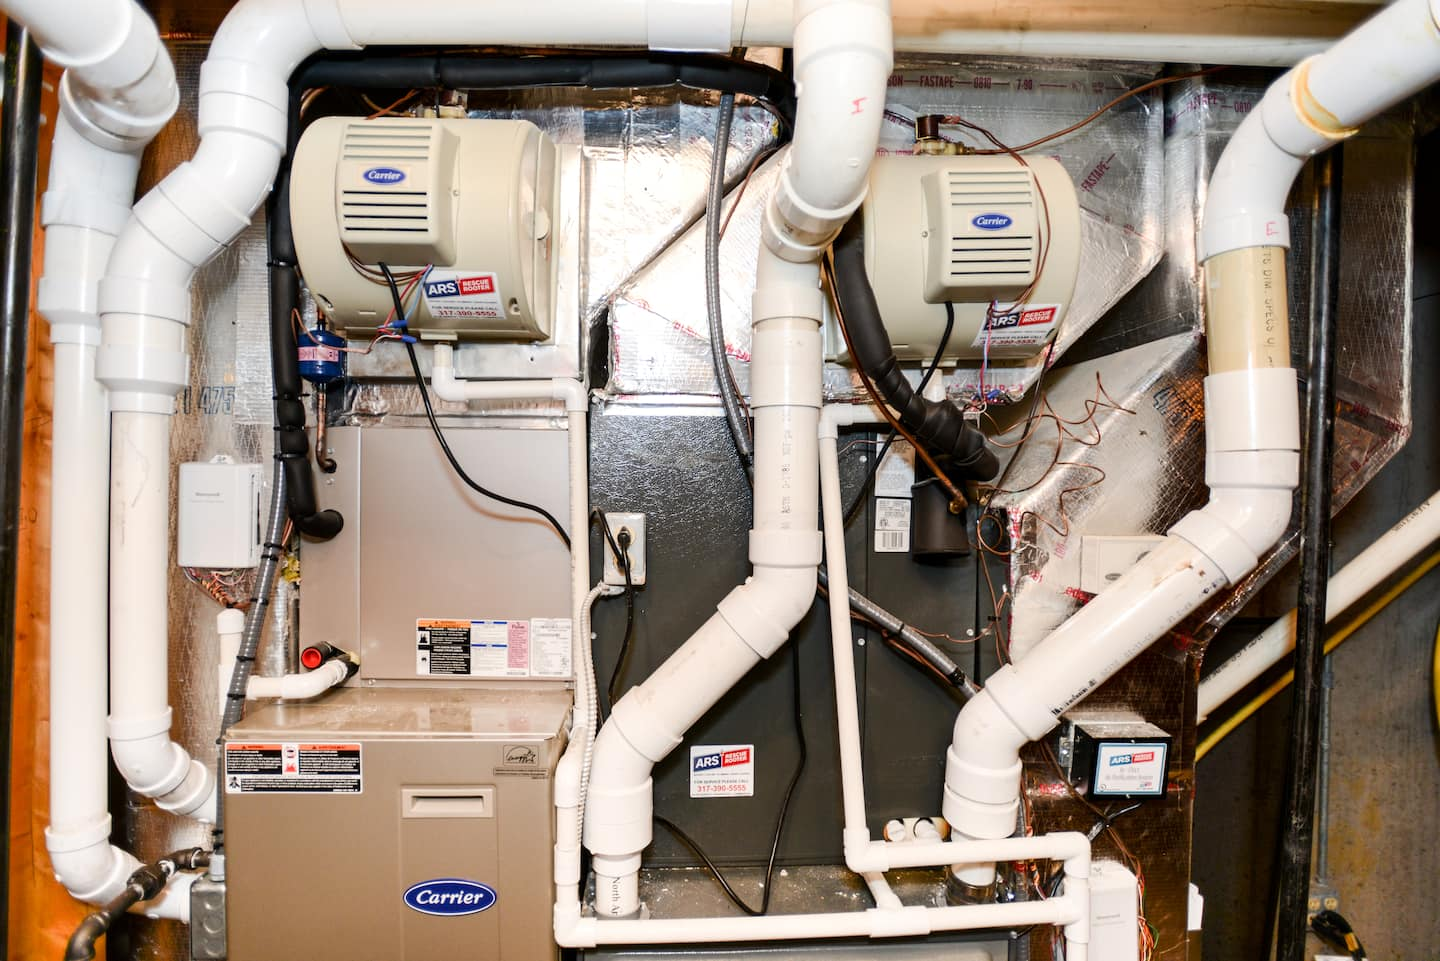 Average cost of new furnace installed - Average Cost Of New Furnace Installed 16